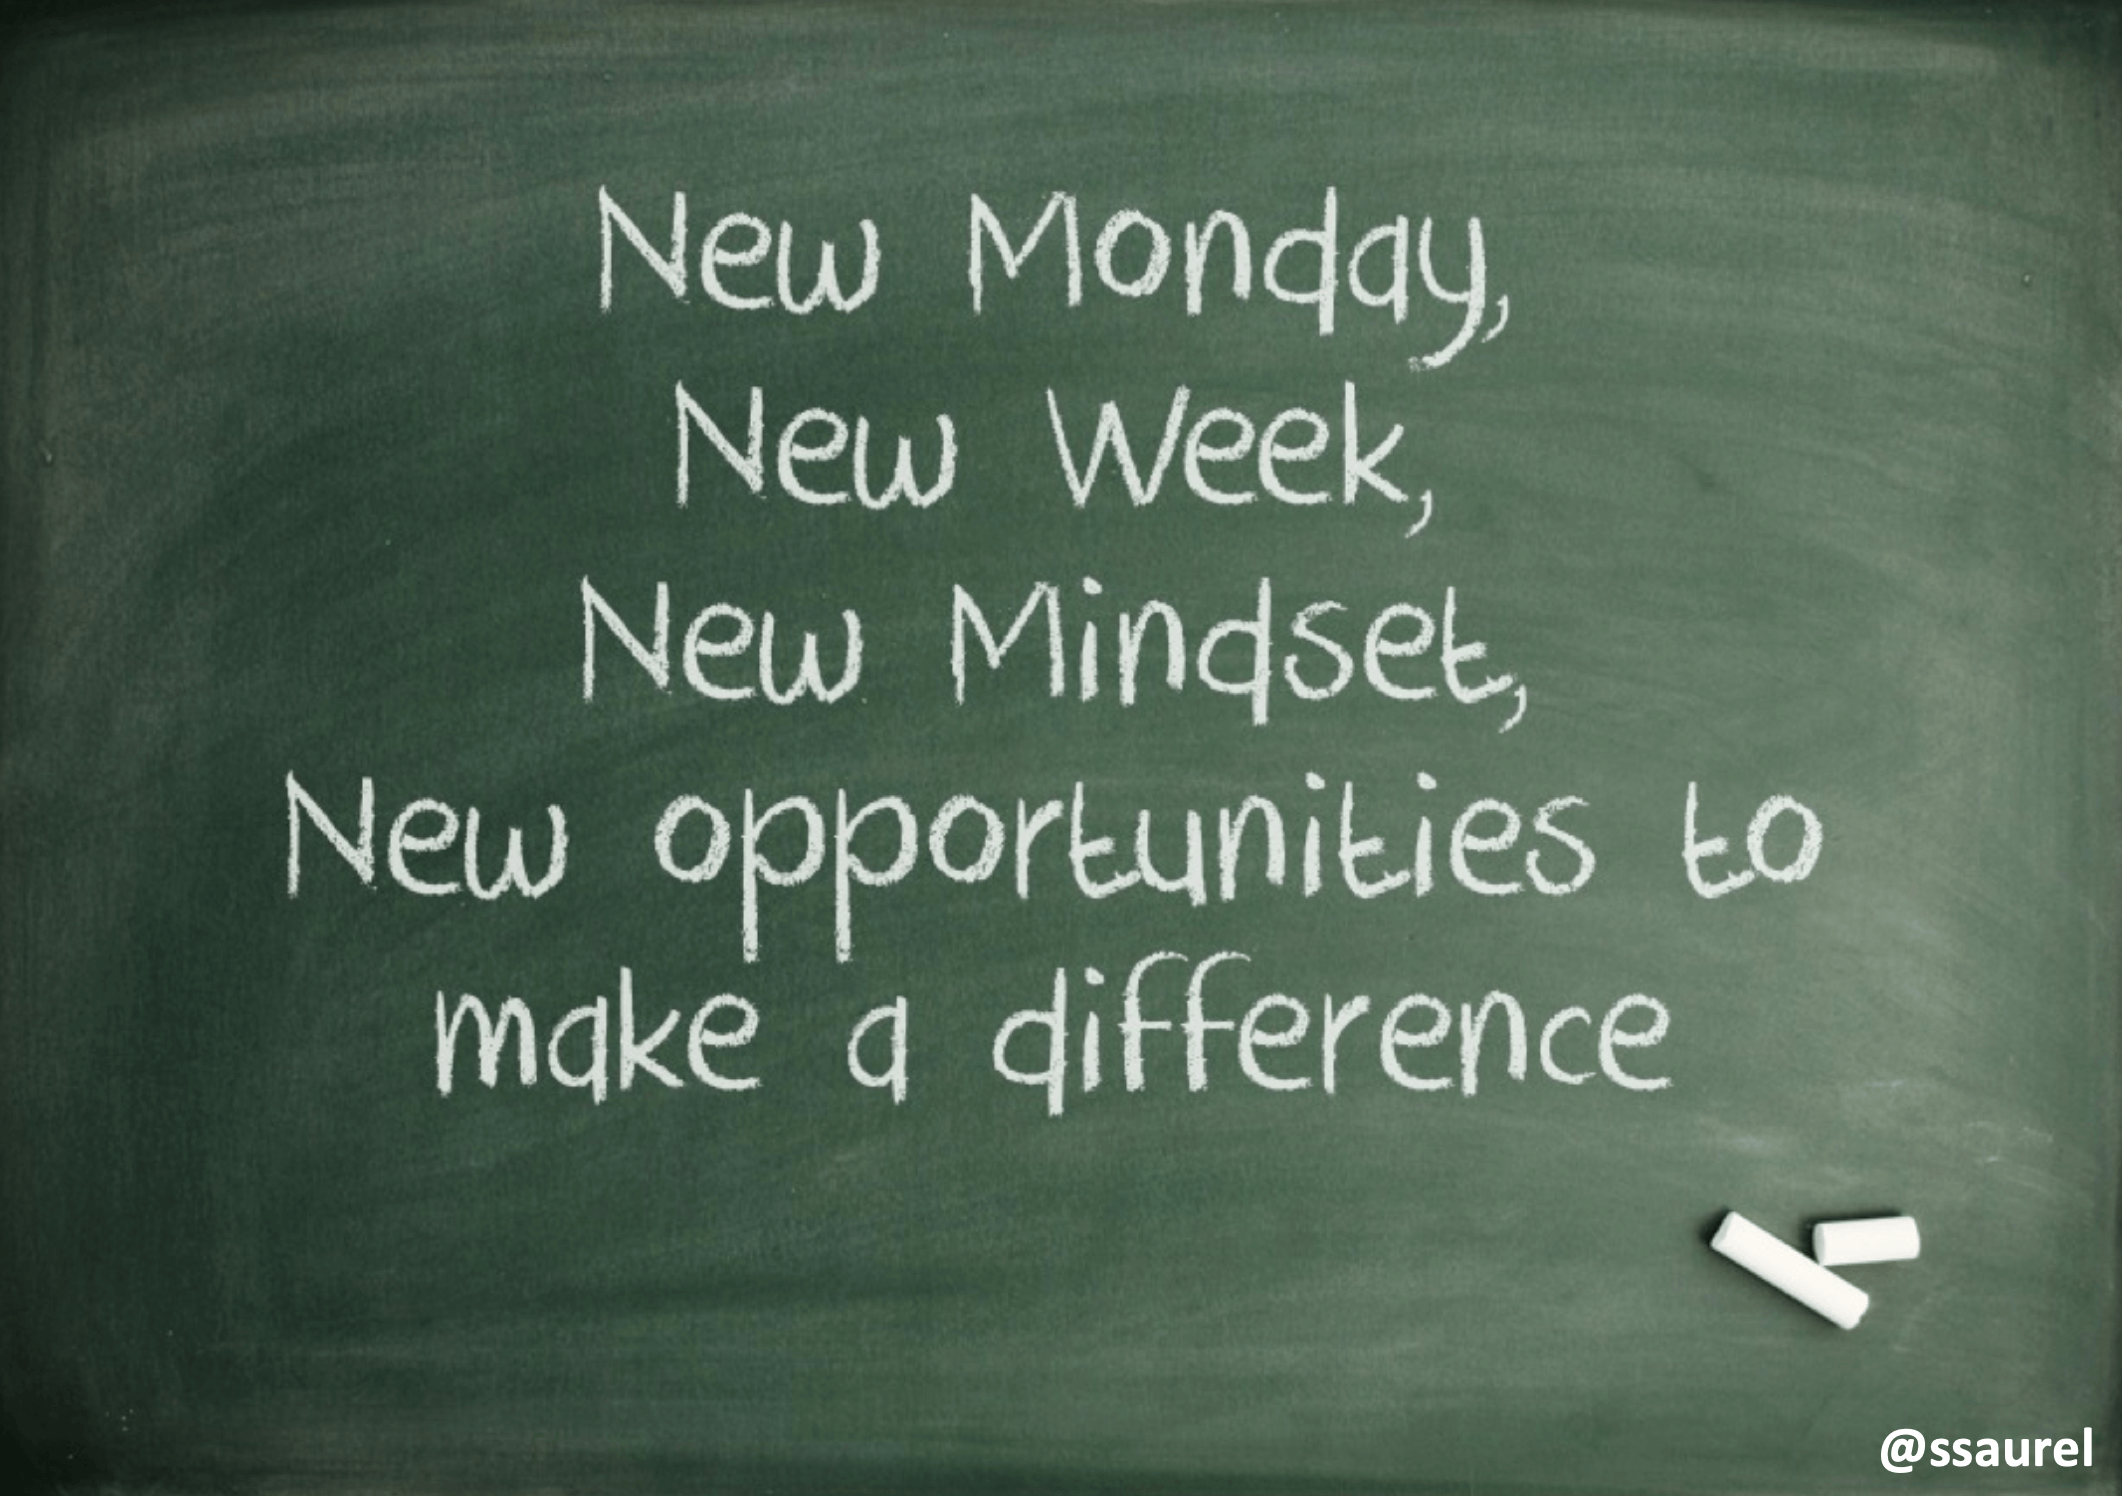 [Image] New Monday, New Week, New Mindset, New opportunities to make a difference